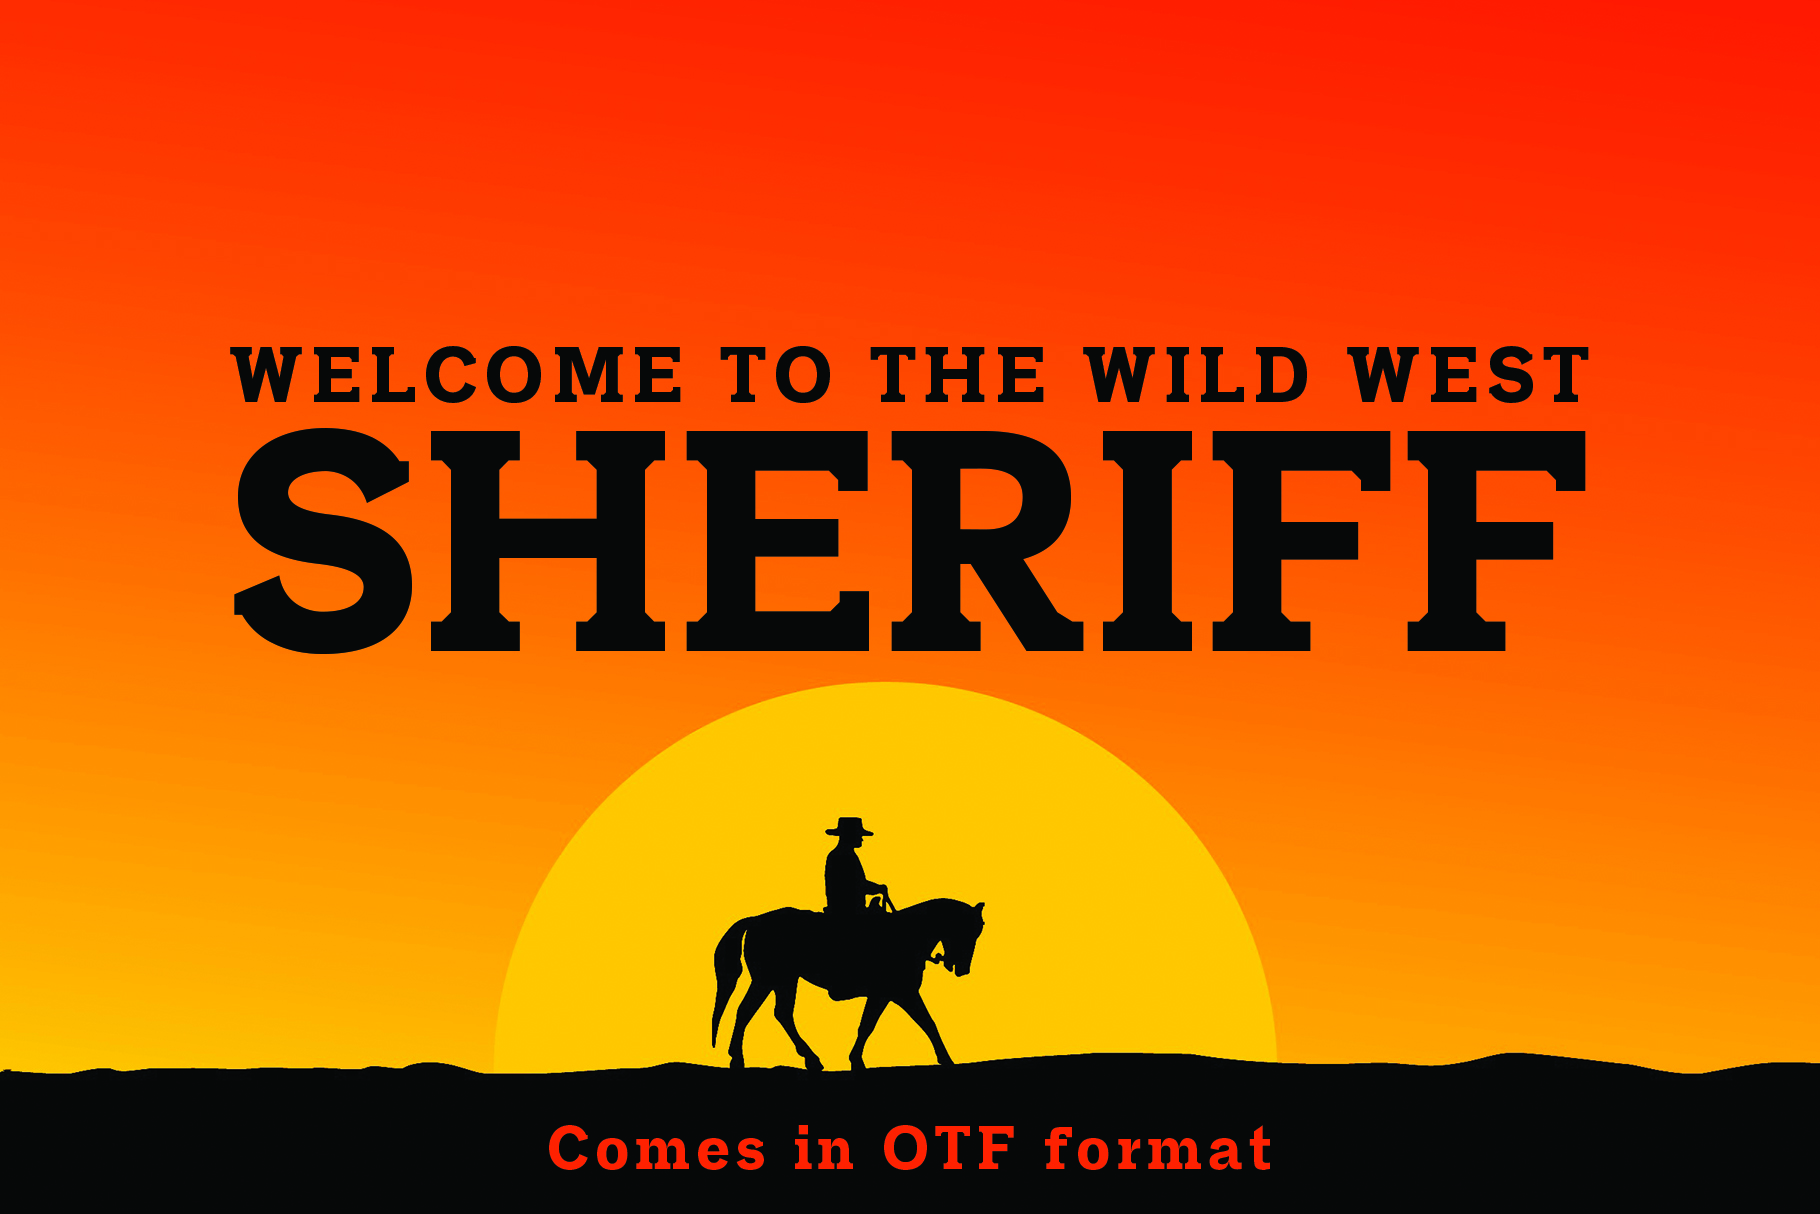 SHERIFF A Font of the Wild West example image 1